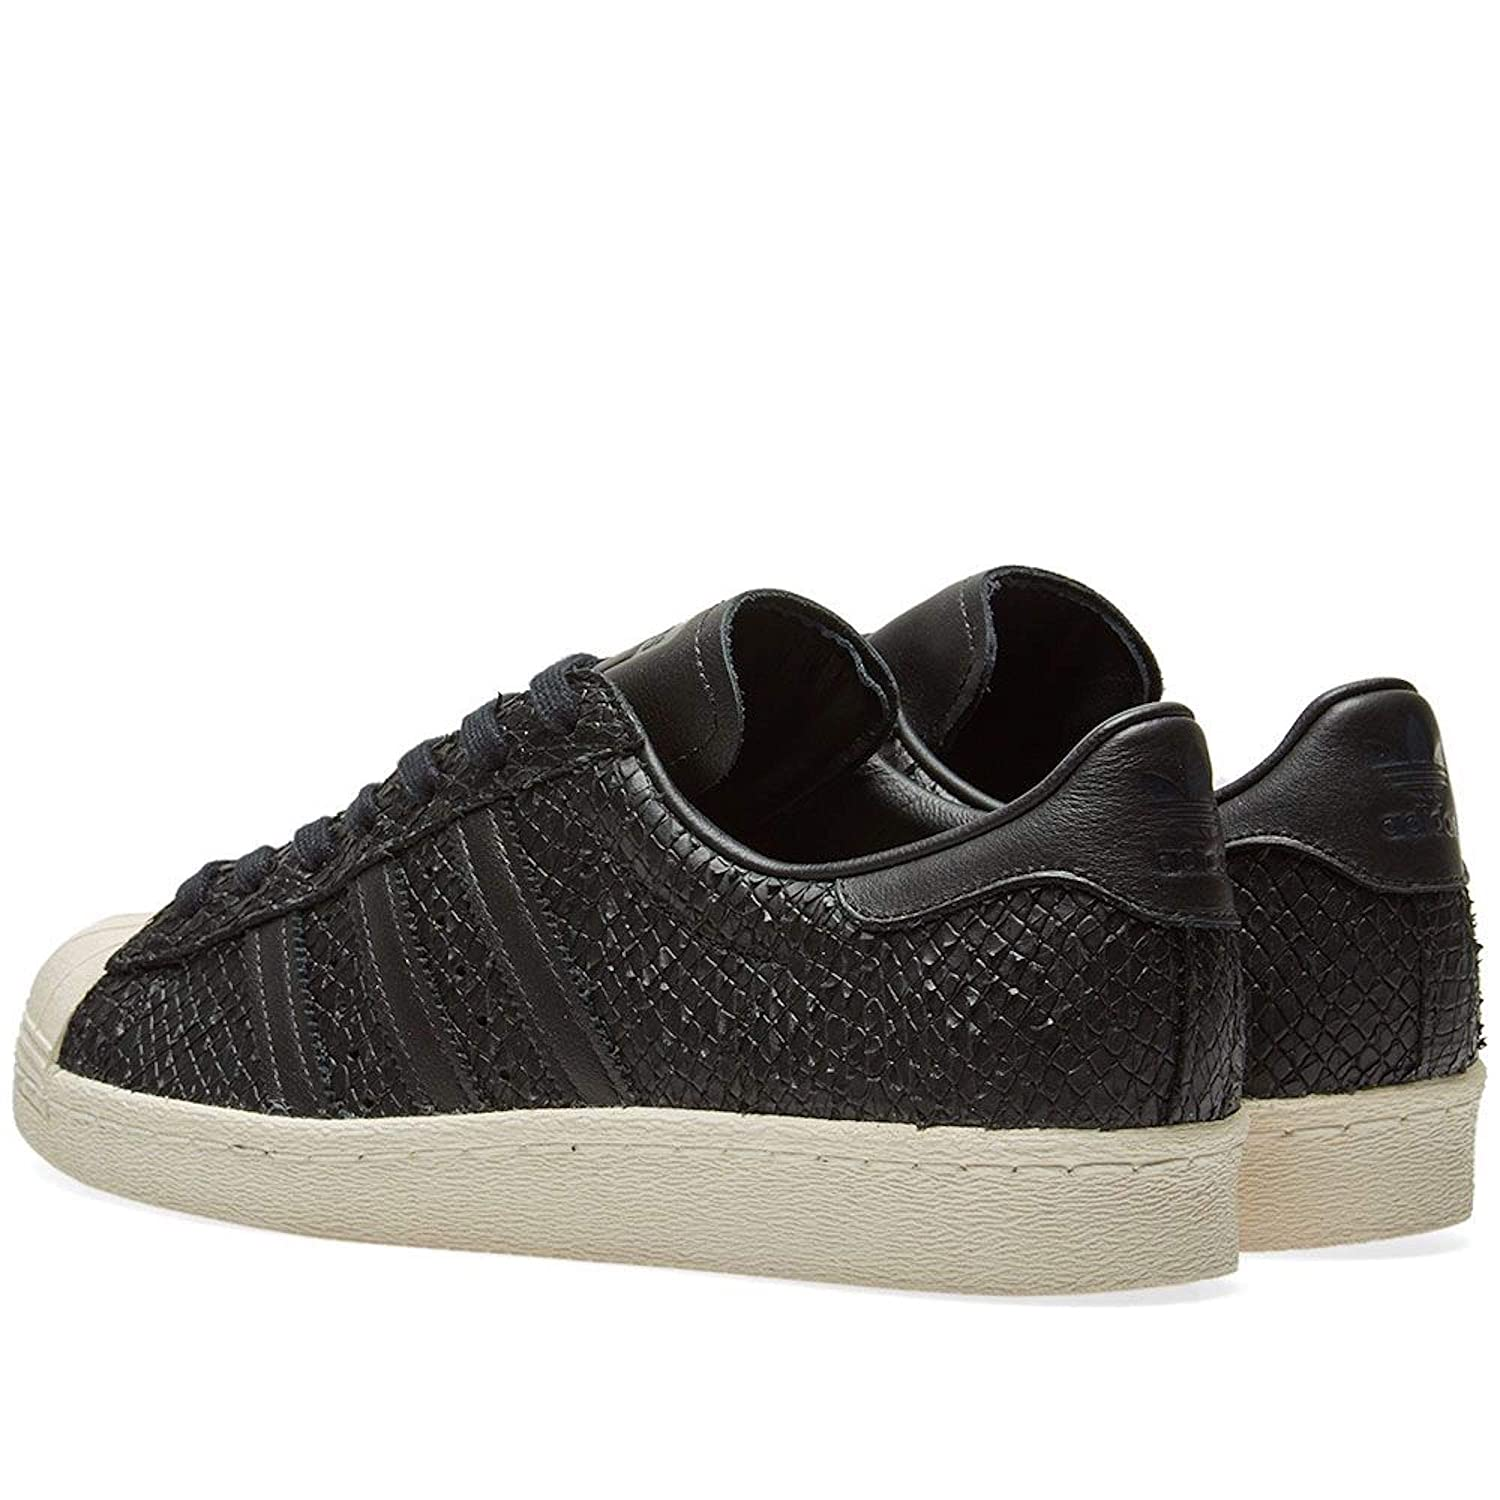 official photos c7c69 57554 adidas Women's Superstar 80s W Bz0643 Fitness Shoes: Amazon ...